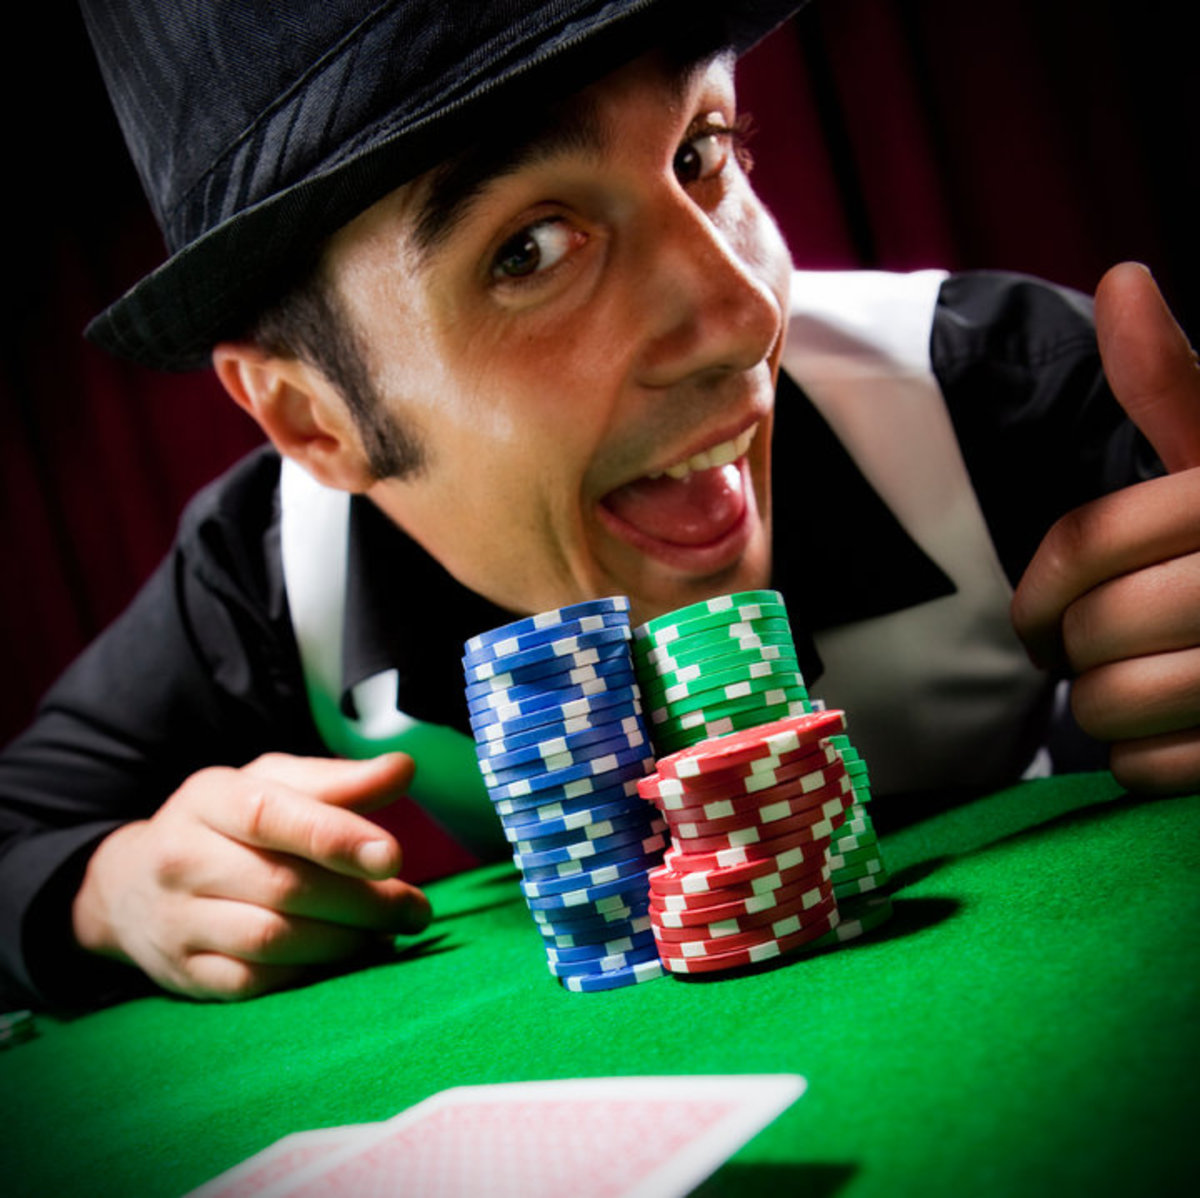 Facebook poker cheats can be used to get free facebook poker chips, zynga poker chips and myspace poker chips.